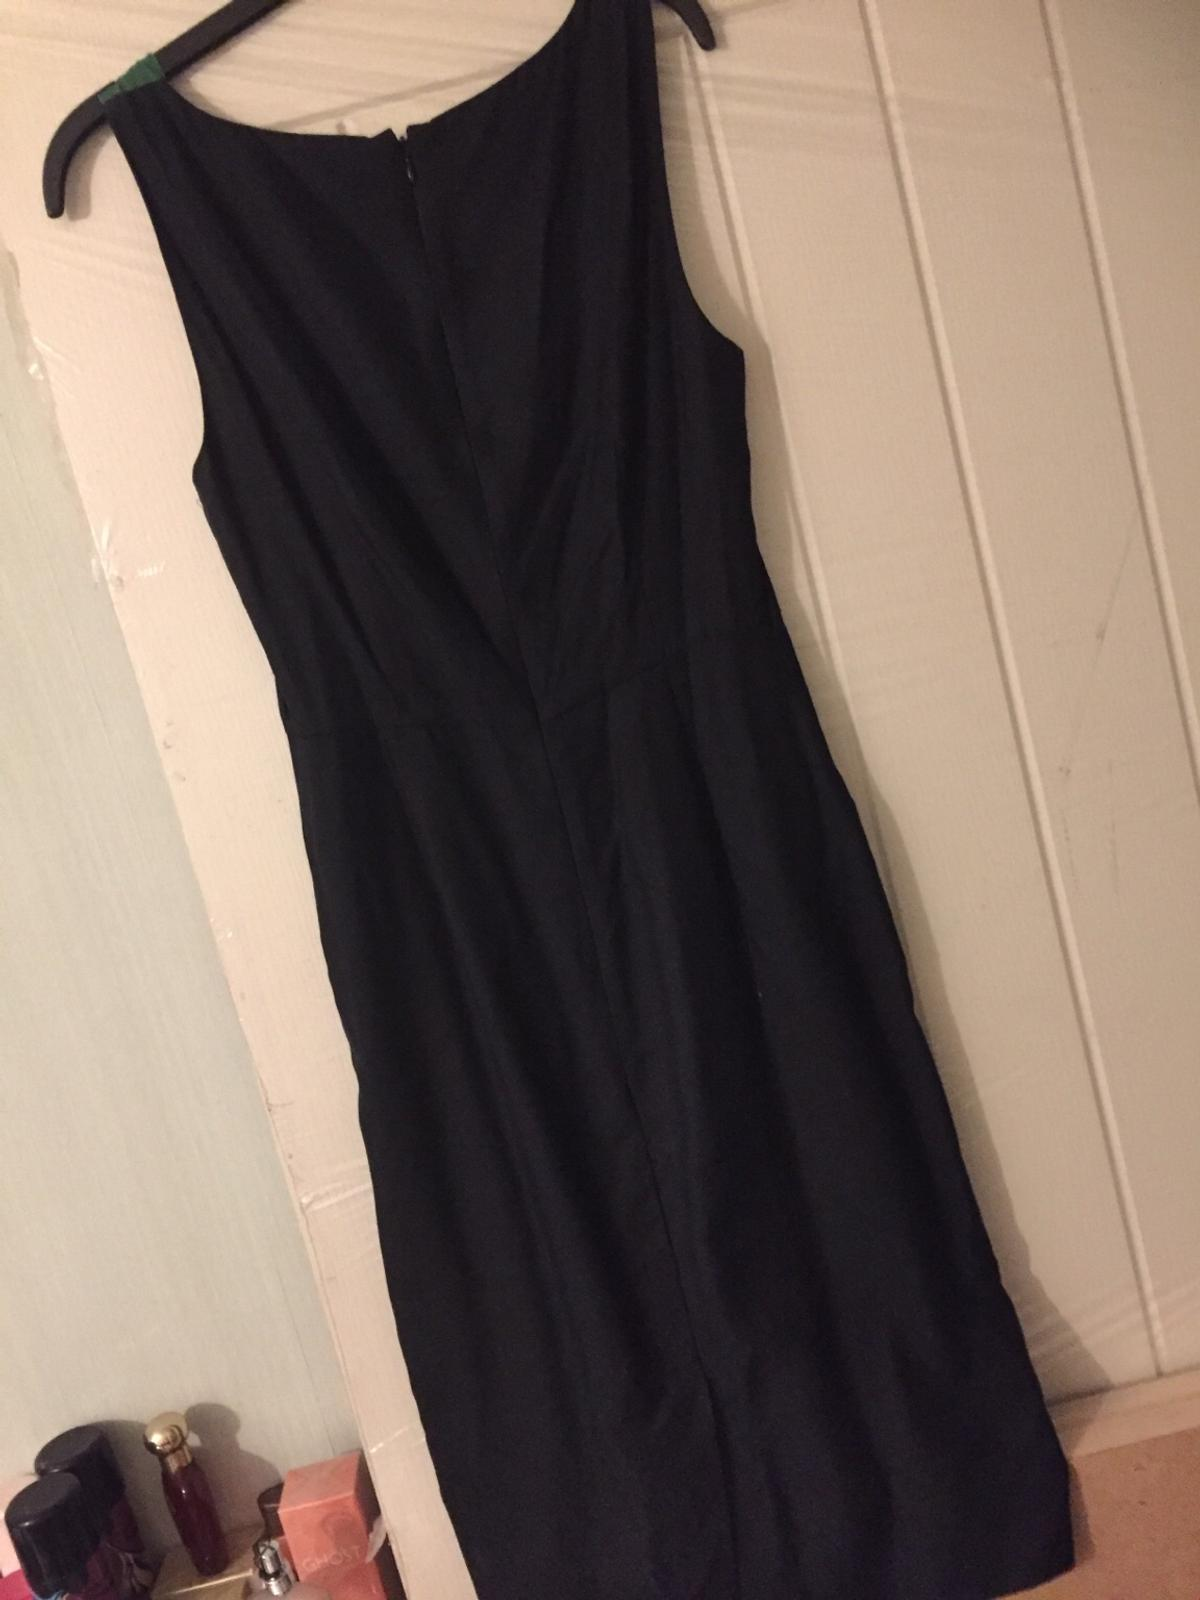 a9e50f996aaf Jaeger 8 black green Bodycon dress in South Staffordshire for £8.00 ...